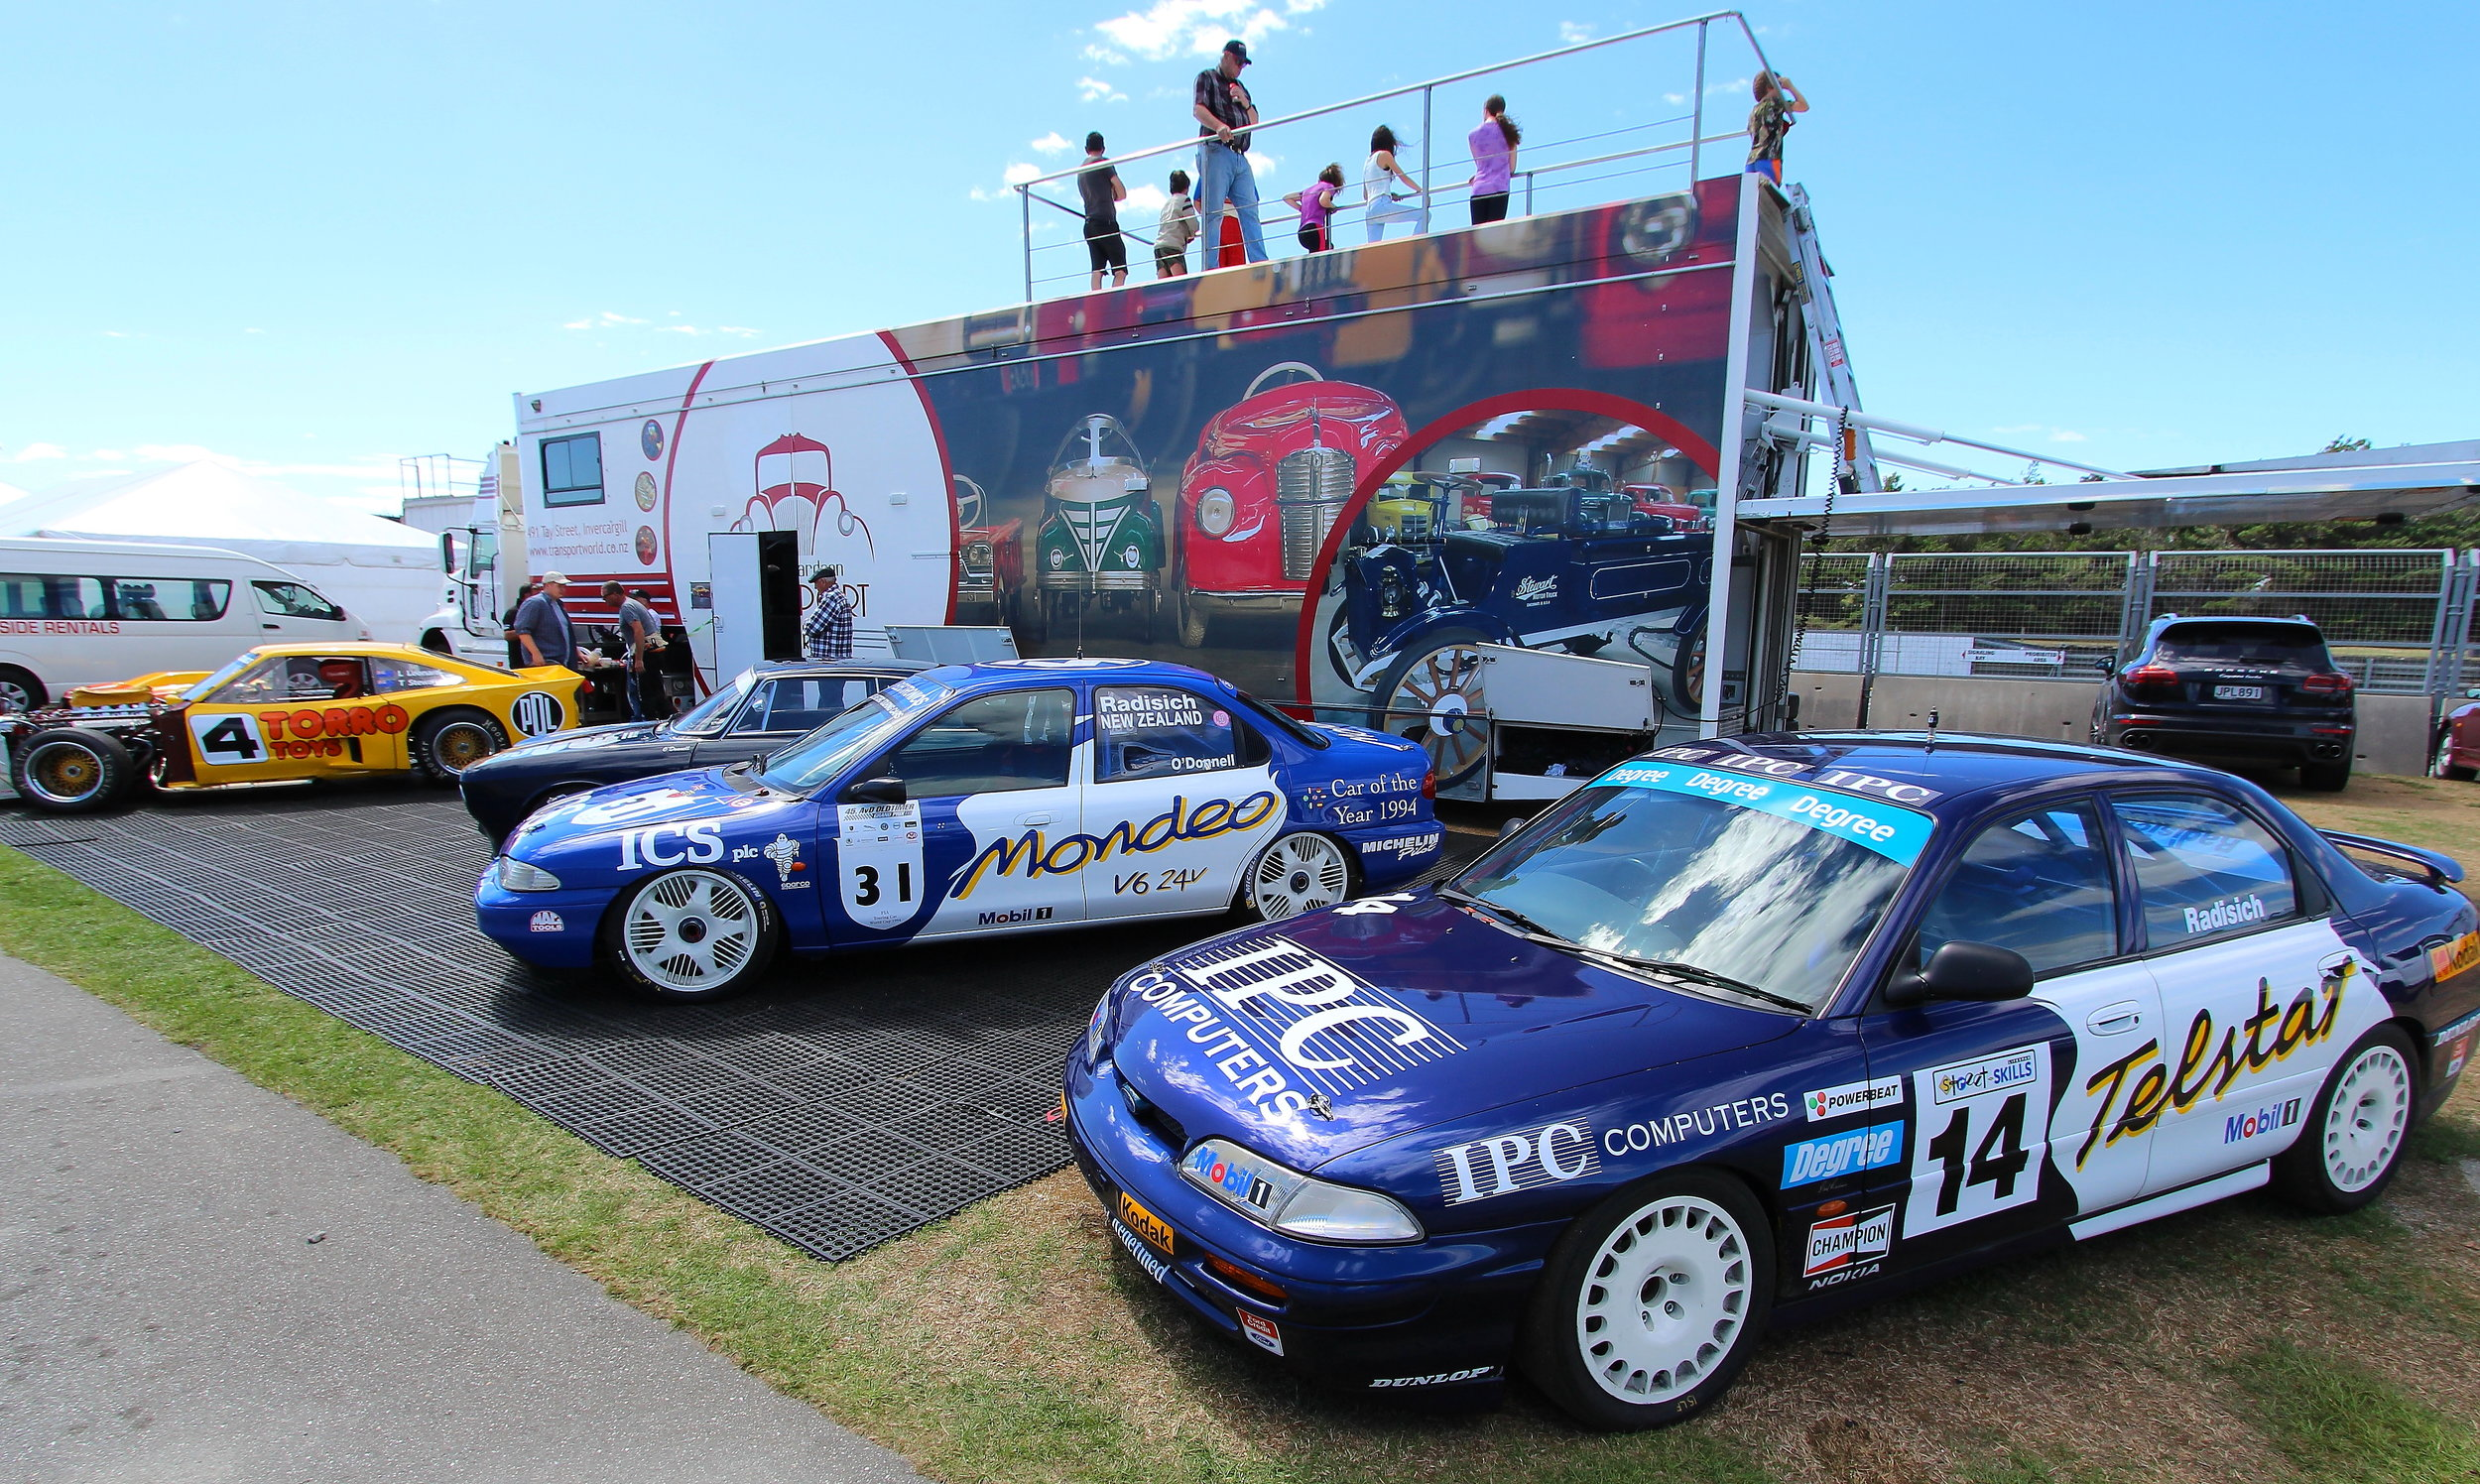 BTCC winners: The epic BTCC championship winning Ford Mondeo of Paul Radisich who drove #31 on Saturday and his former Ford Telstar